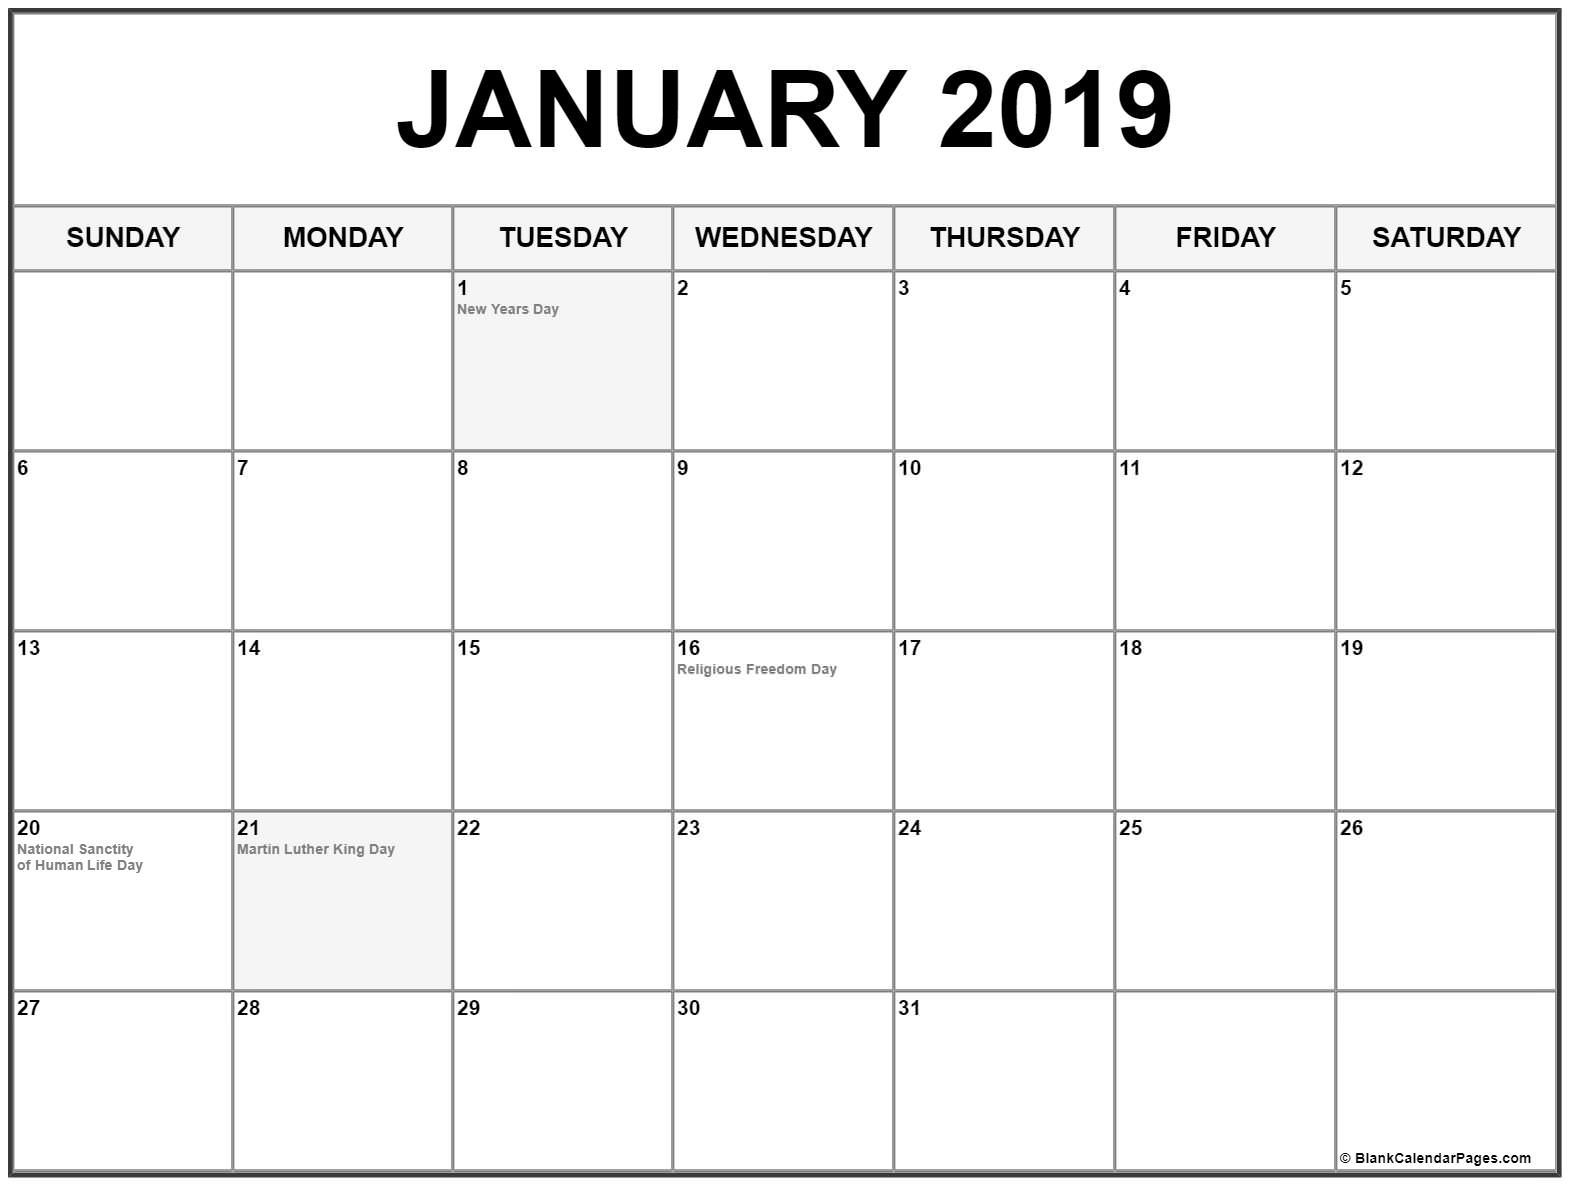 January 2019 Calendar With Holidays | August Calendar